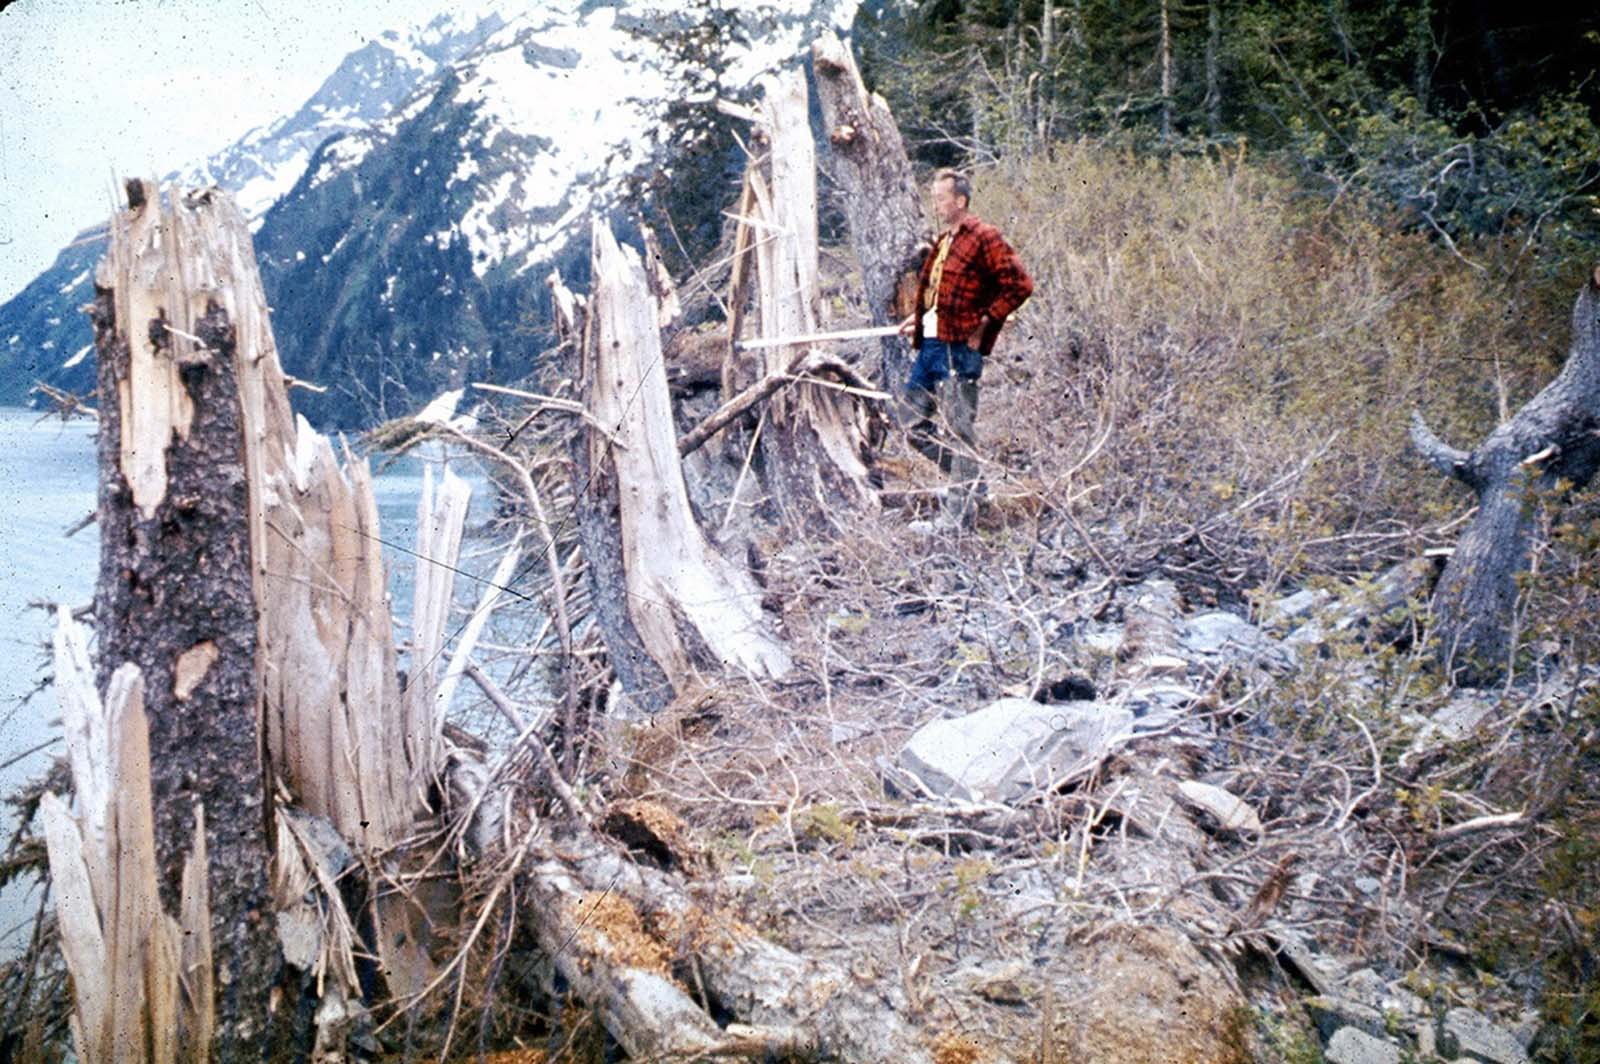 Trees up to 24 inches in diameter and 100 feet above sea level were broken and splintered by the surge wave generated by an underwater landslide in Port Valdez on Prince William Sound.